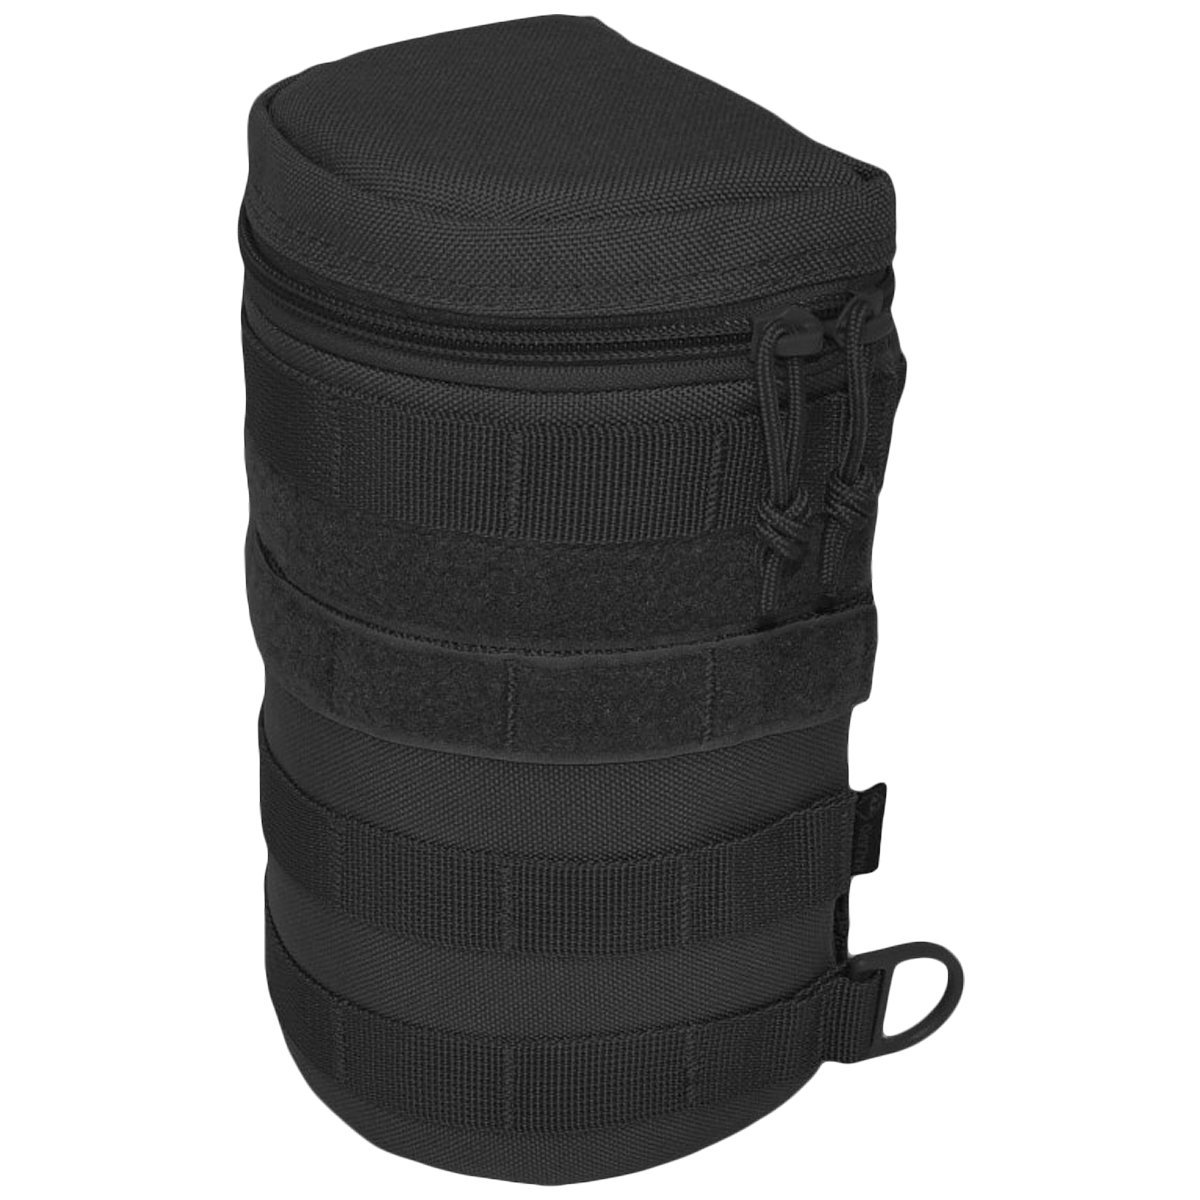 HAZARD 4 Jelly Roll Lens/Scope/Bottle Padded Case with Molle, Black by HAZARD 4